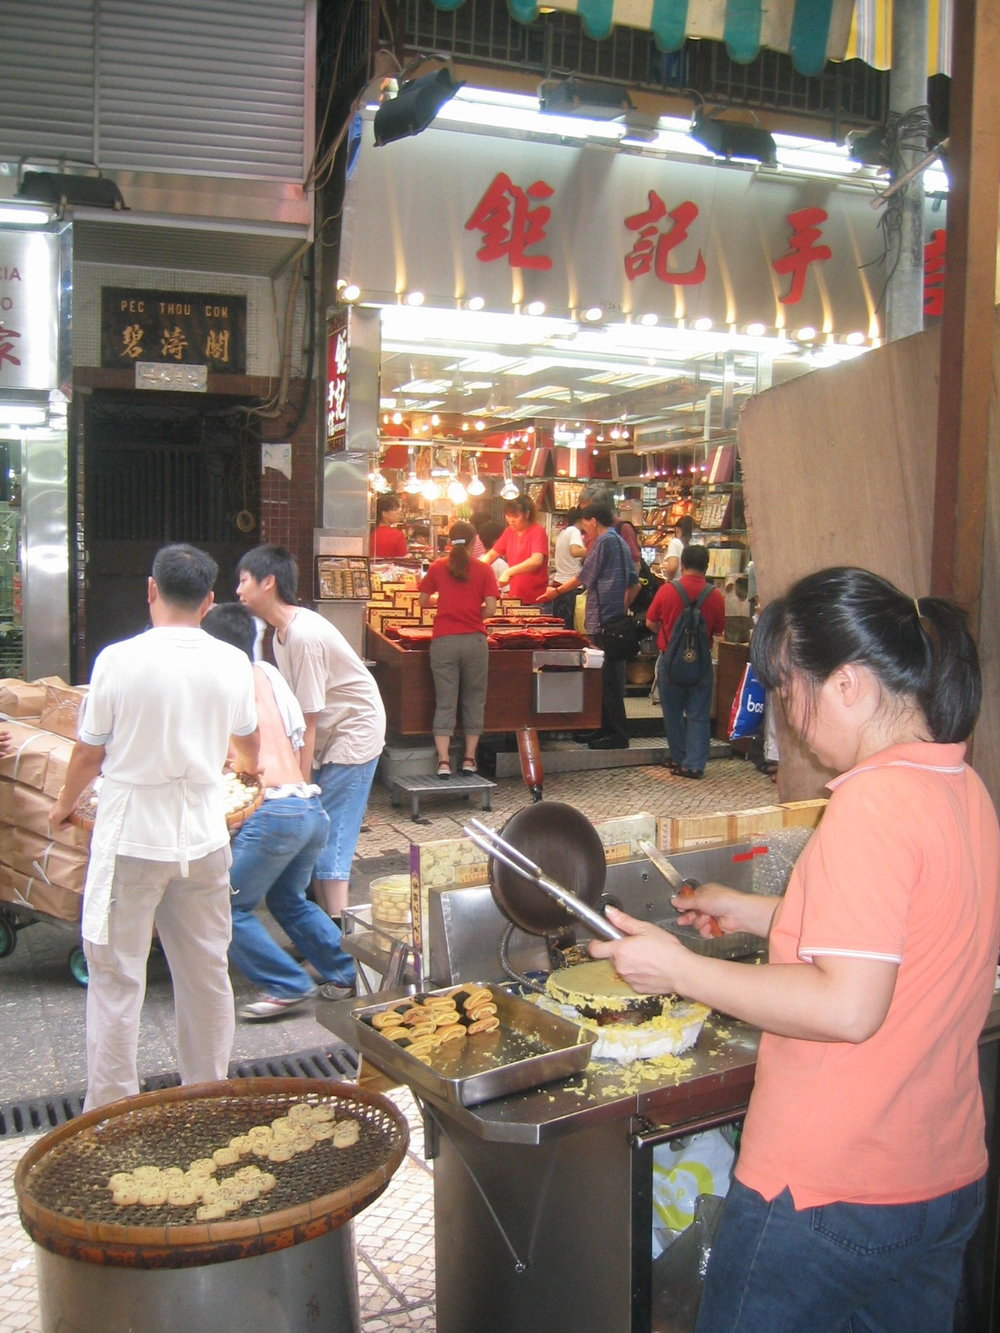 More Macau specialties from my 2006 trip: almond cookies and super-moist beef jerky